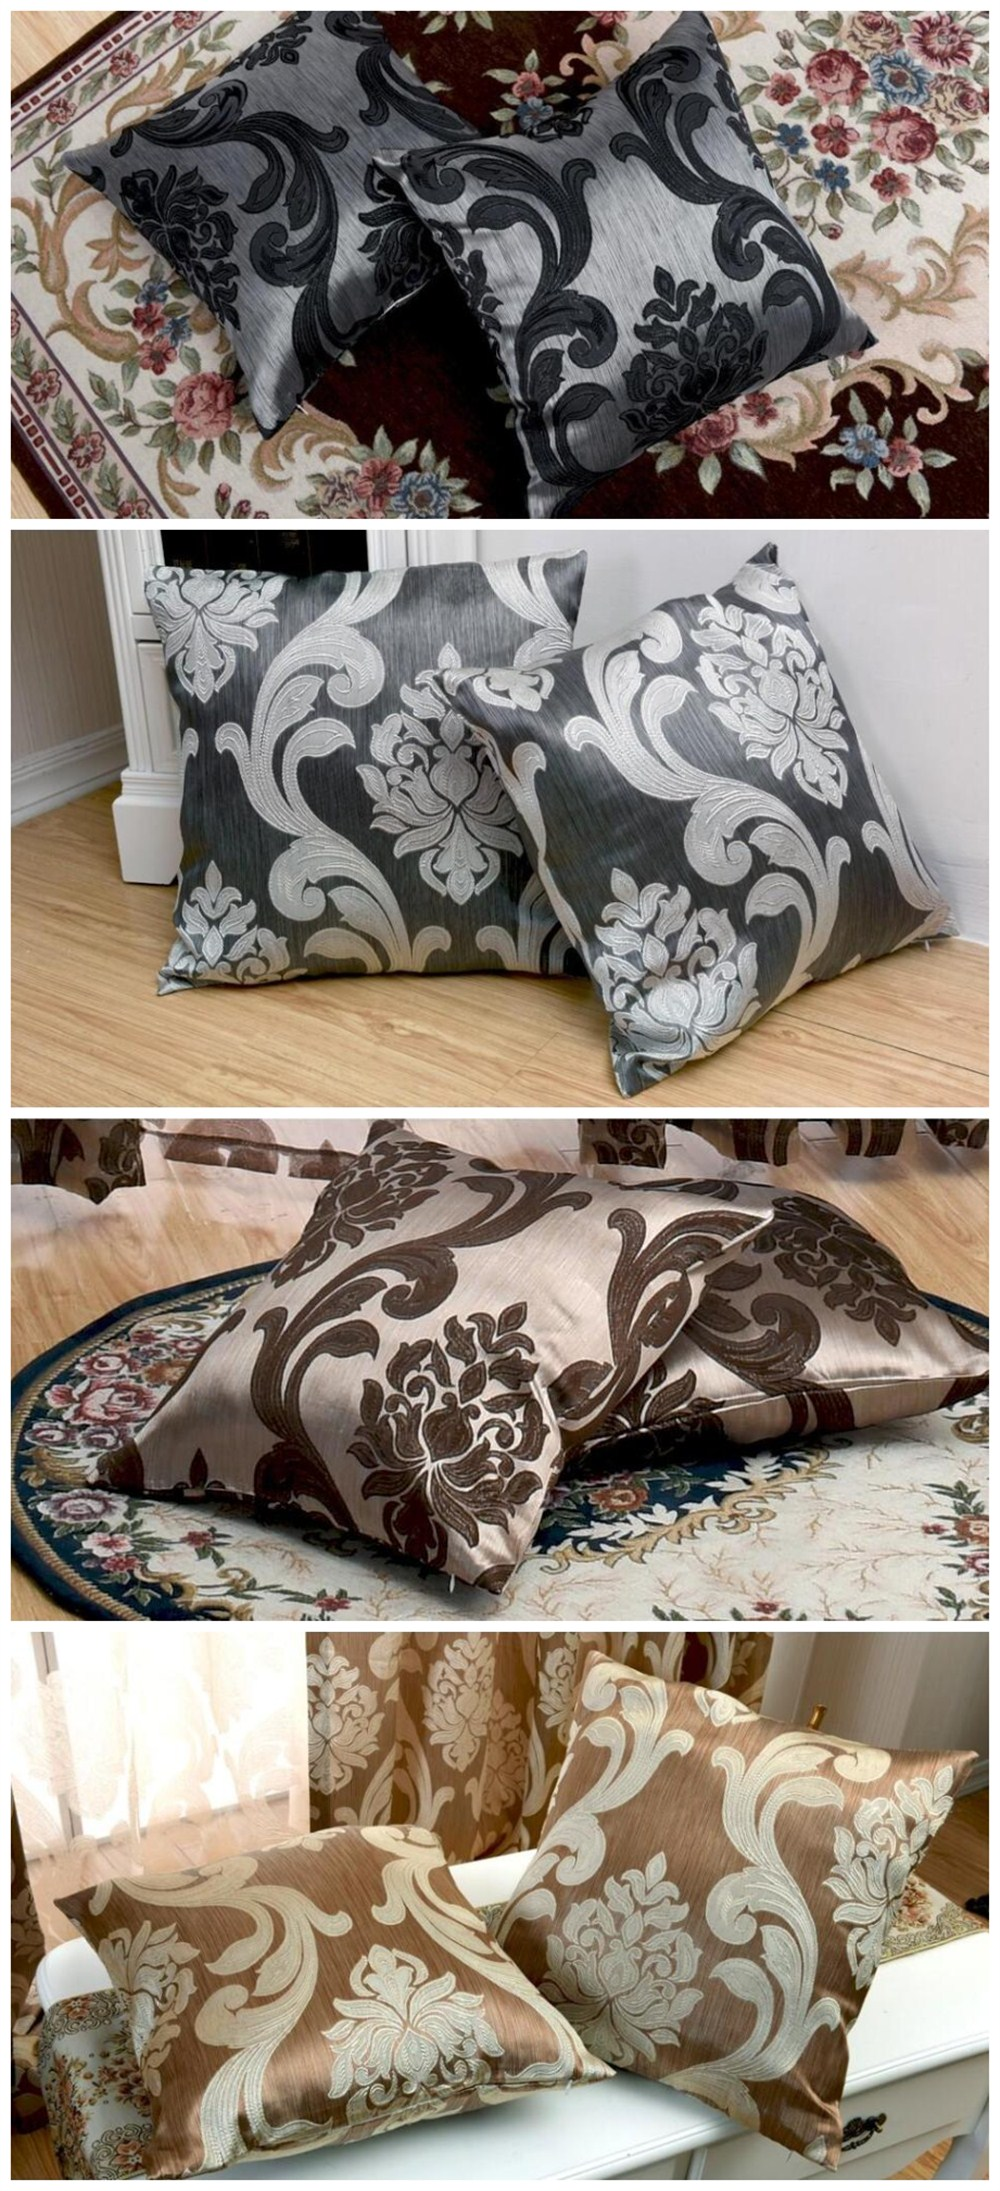 LOZUJOJU Floral Jacquard Hot Sale European Pillow Cases Cushion Covers for Home Decor Textile Rustic Bedroom Chair Living (2)